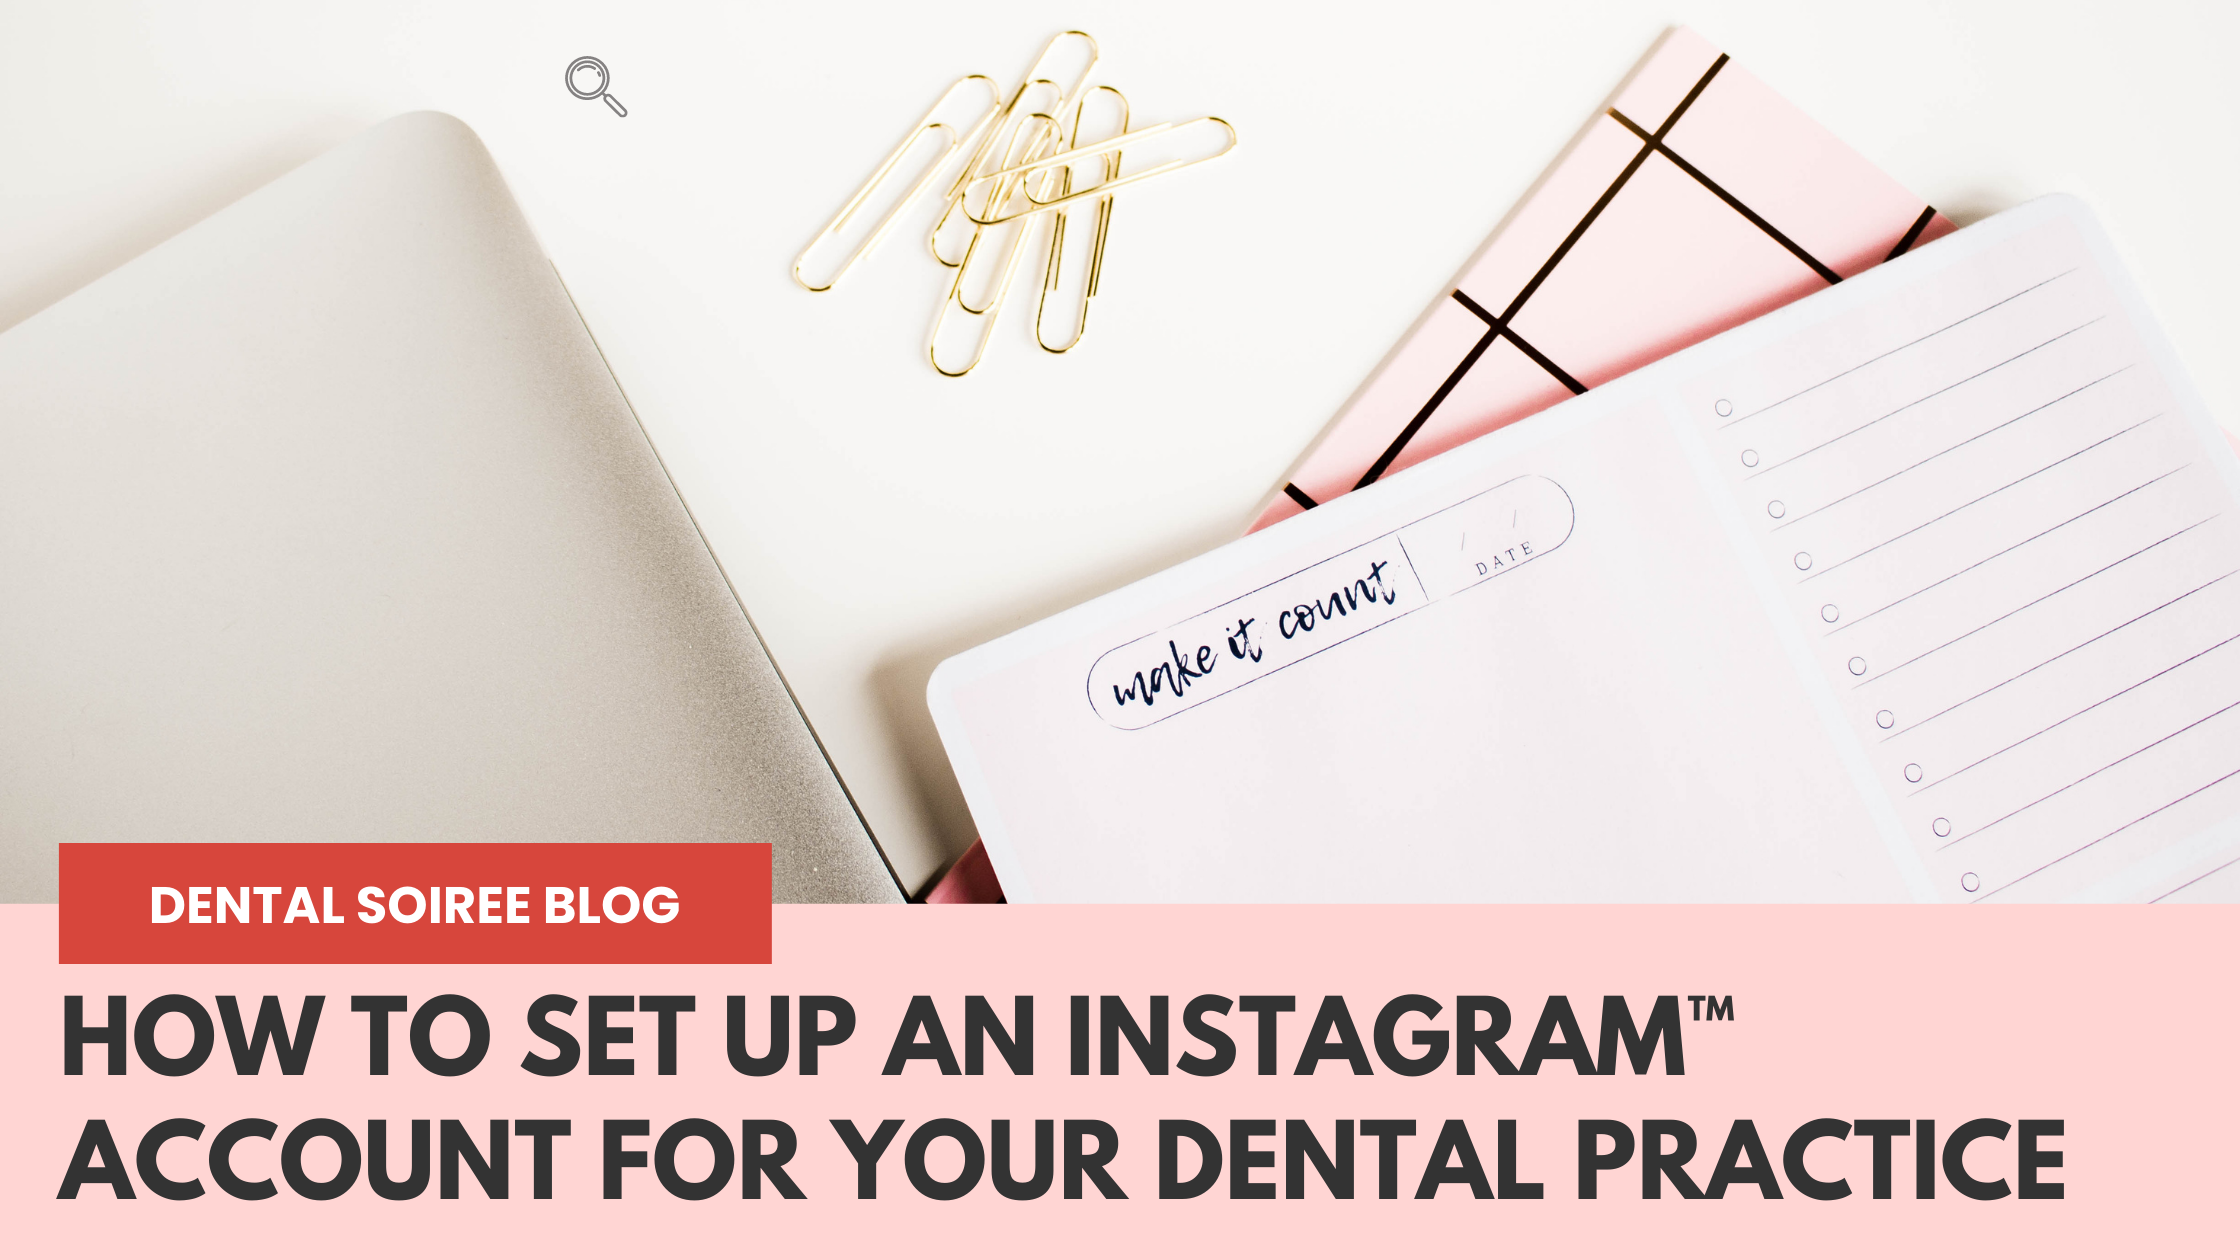 How to Set Up an Instagram™ Account for Your Dental Practice